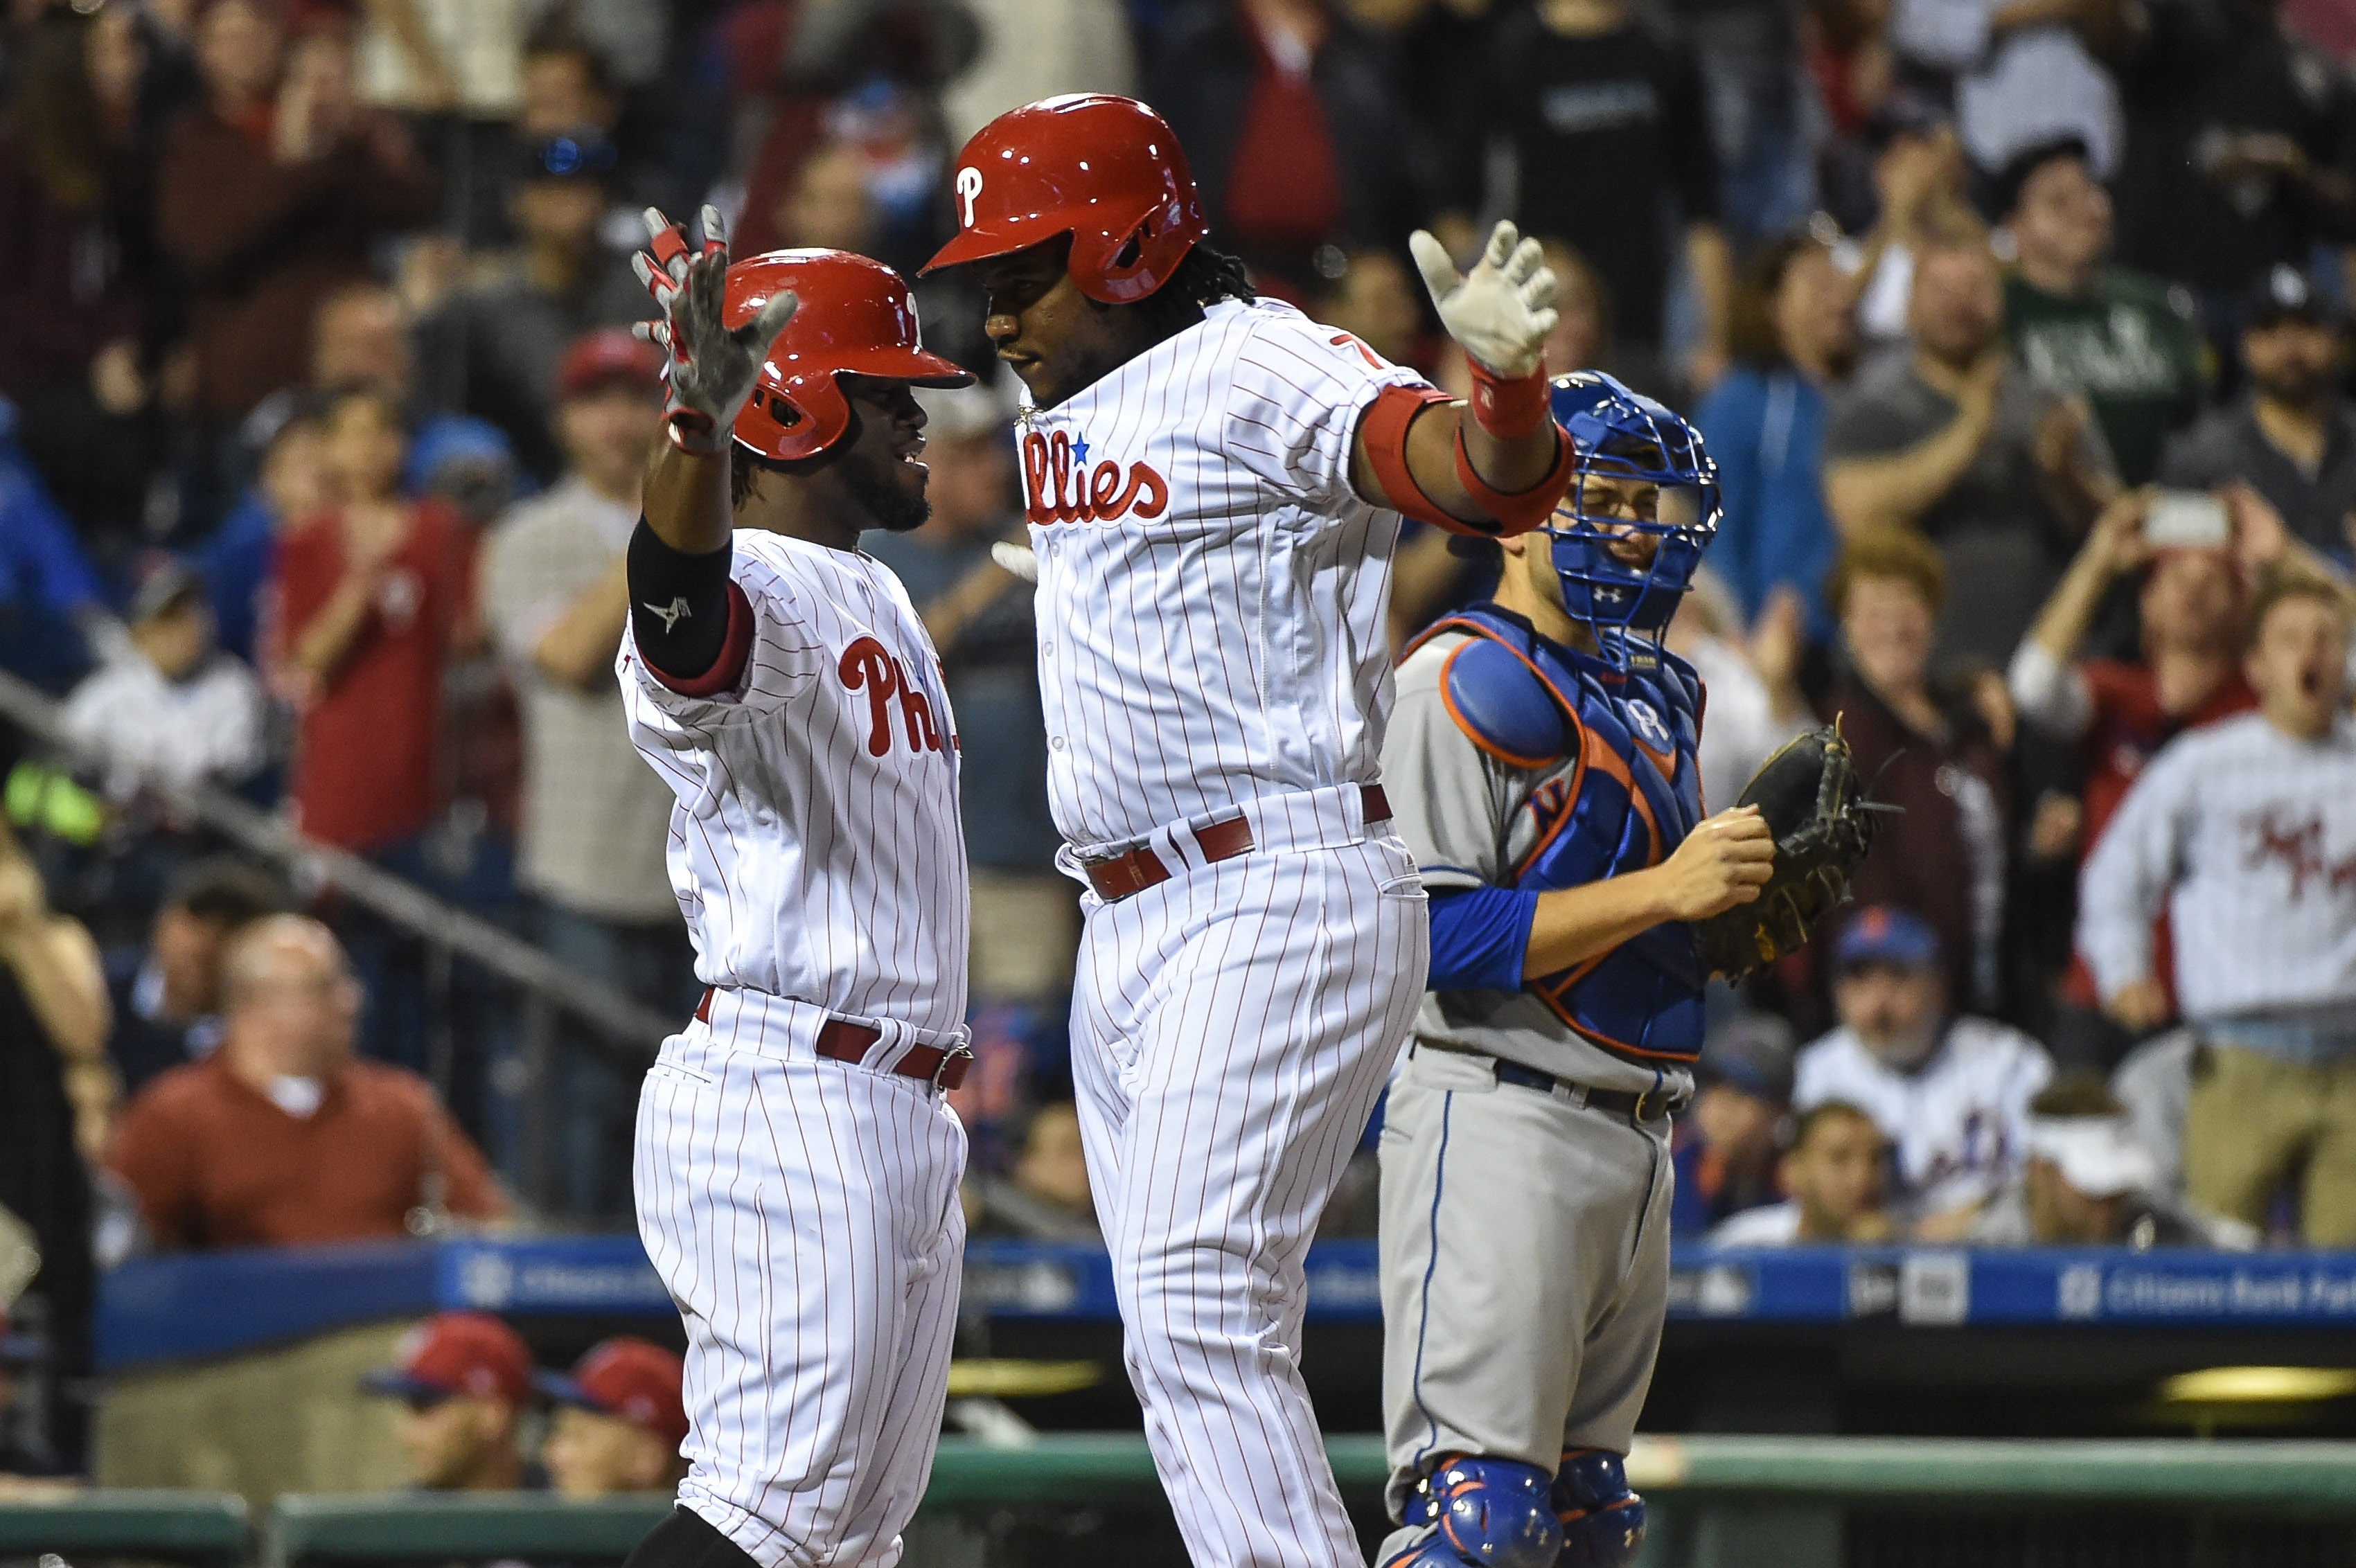 Phillies lose to Nationals on Bryce Harper's walk-off homer